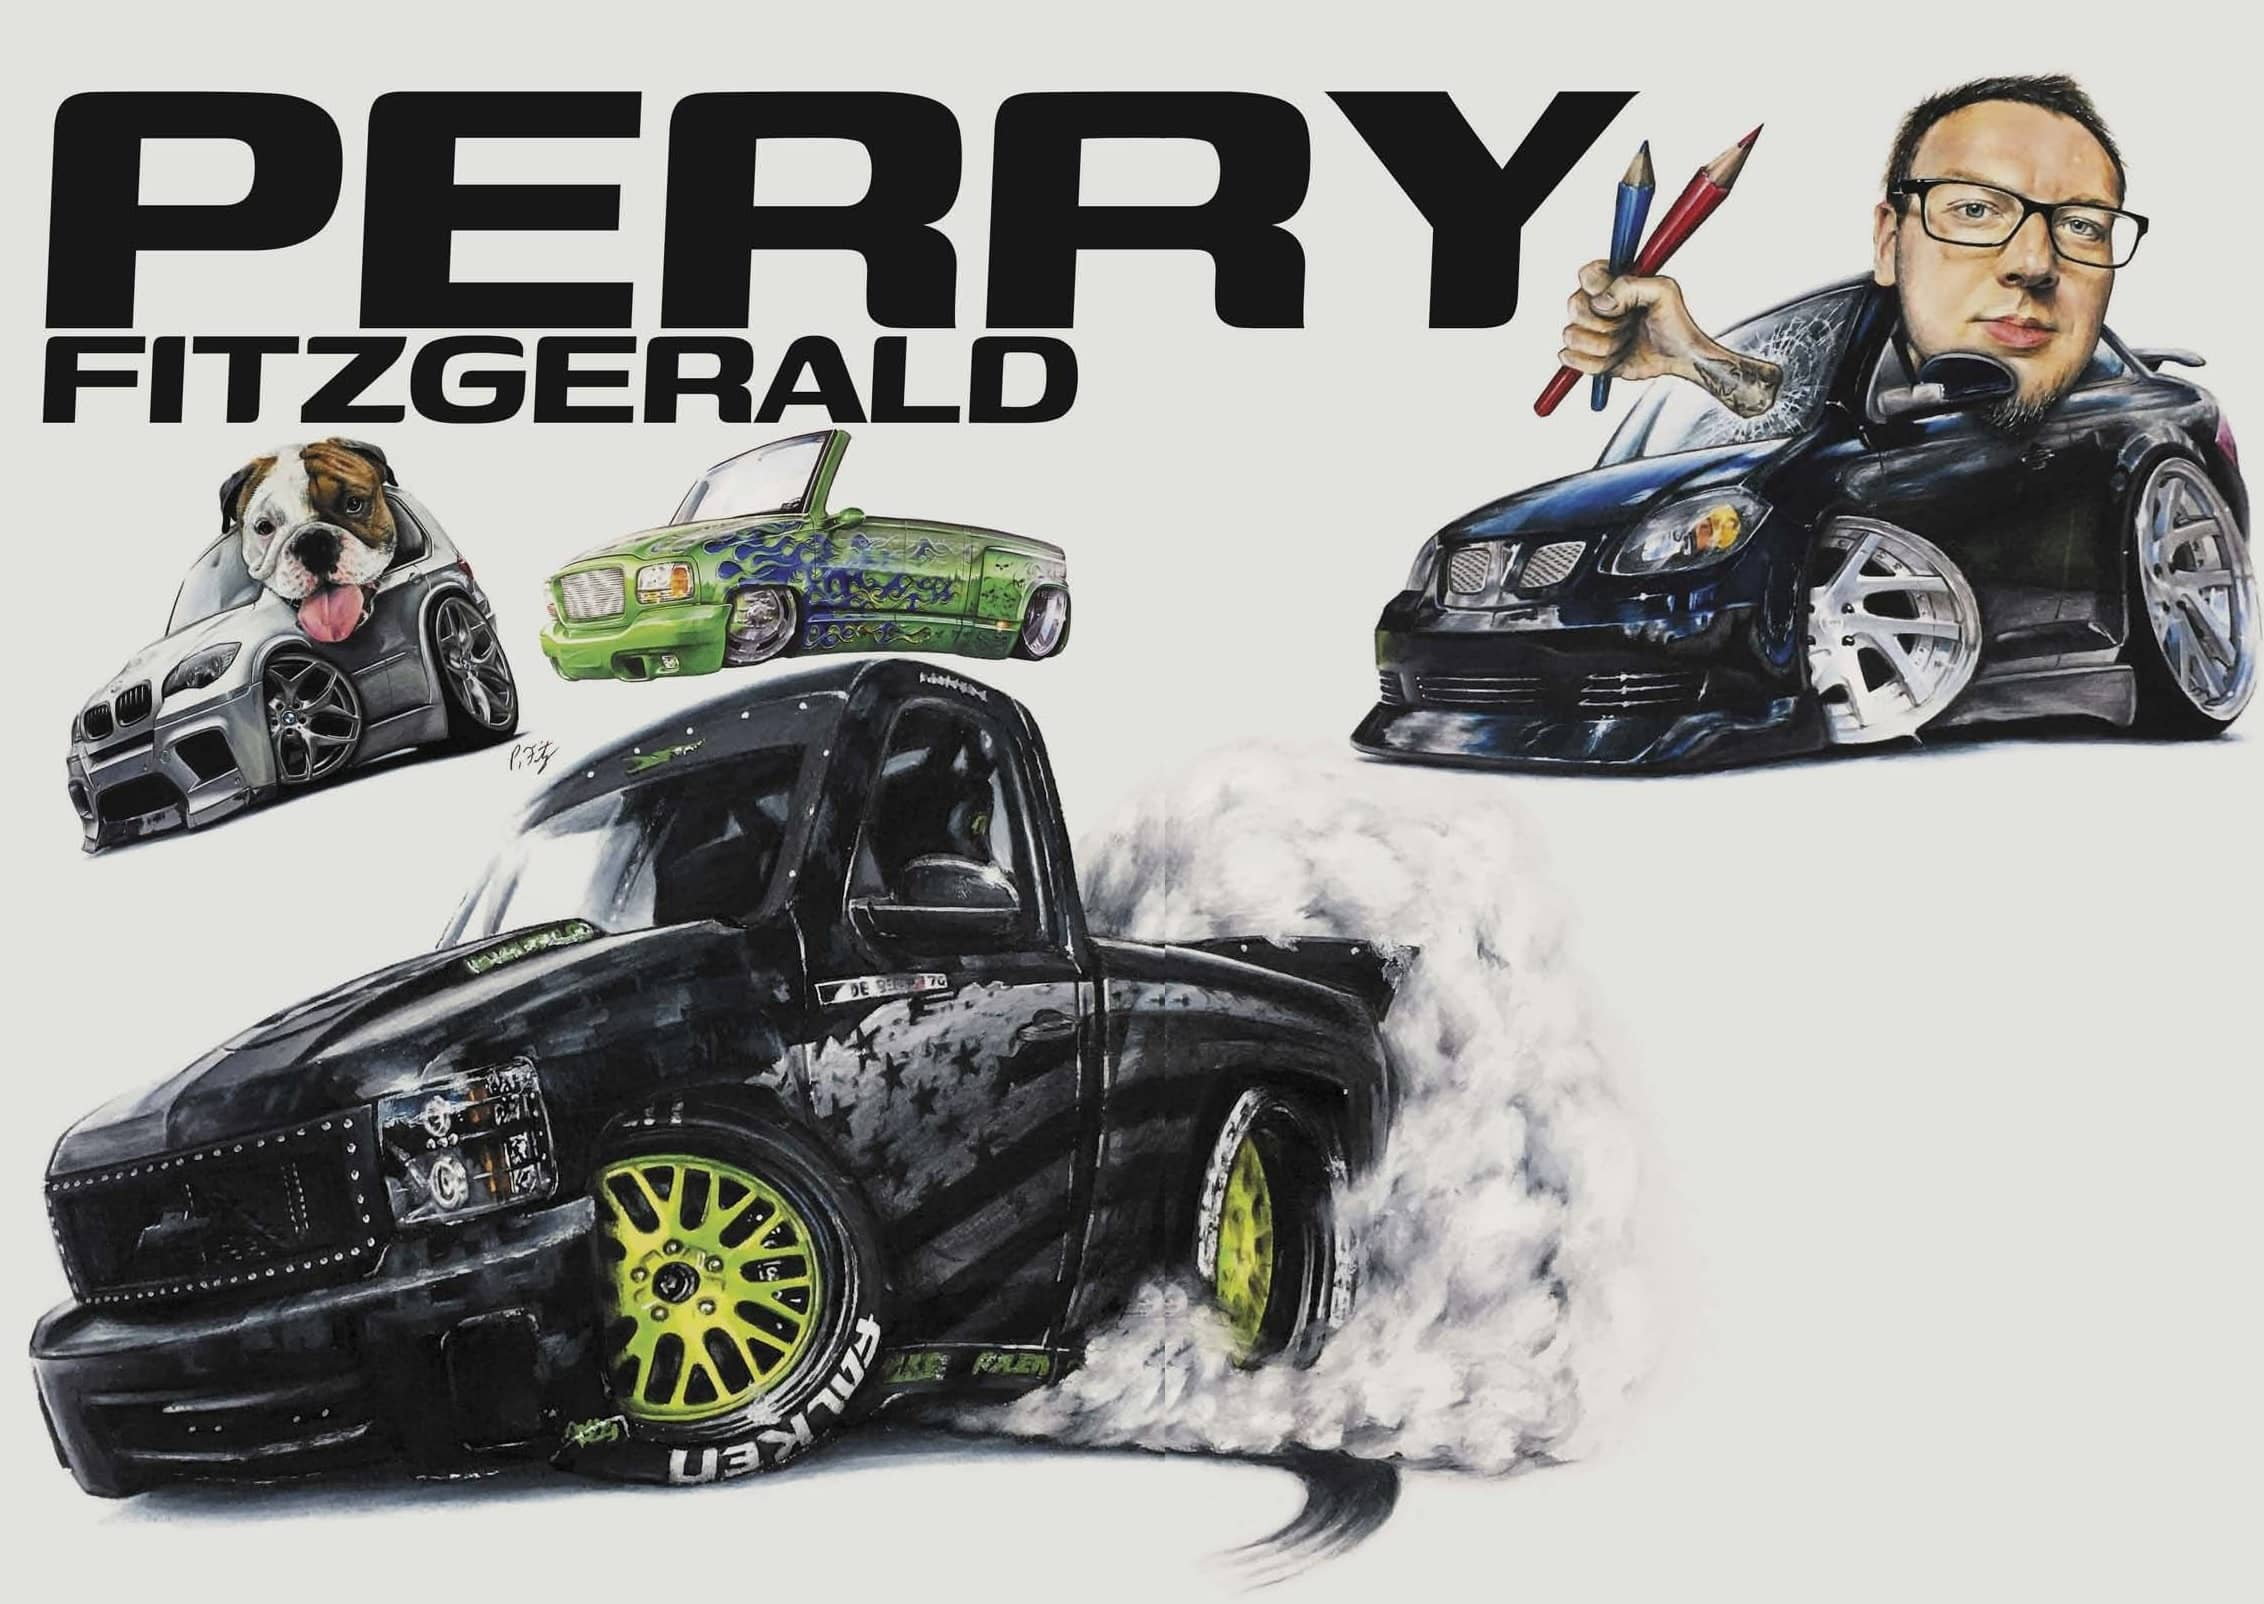 PERRY FITZGERALD